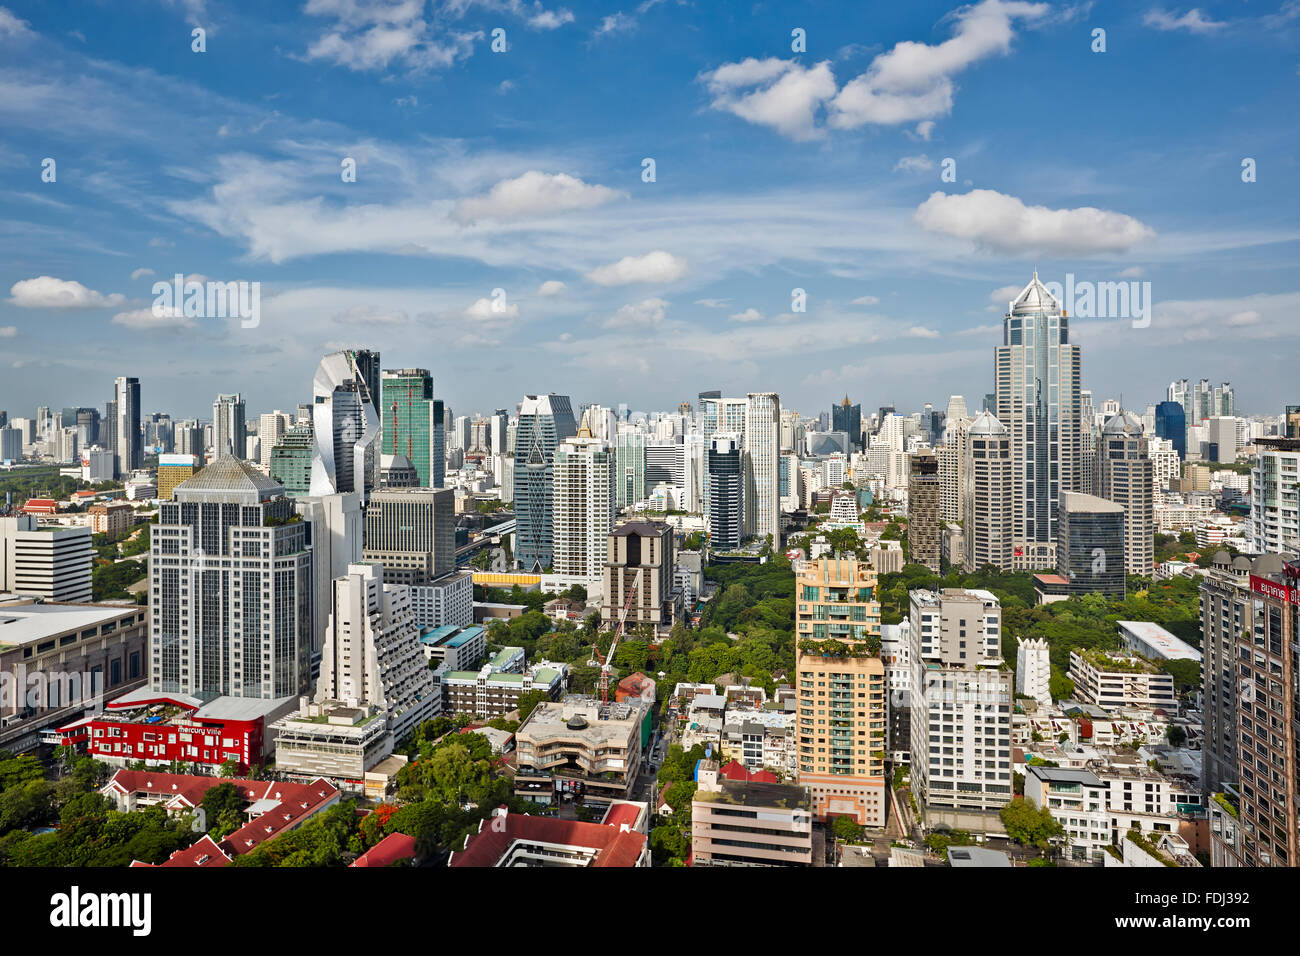 Elevated view of modern high-rise buildings in the central part of Bangkok, Thailand. - Stock Image